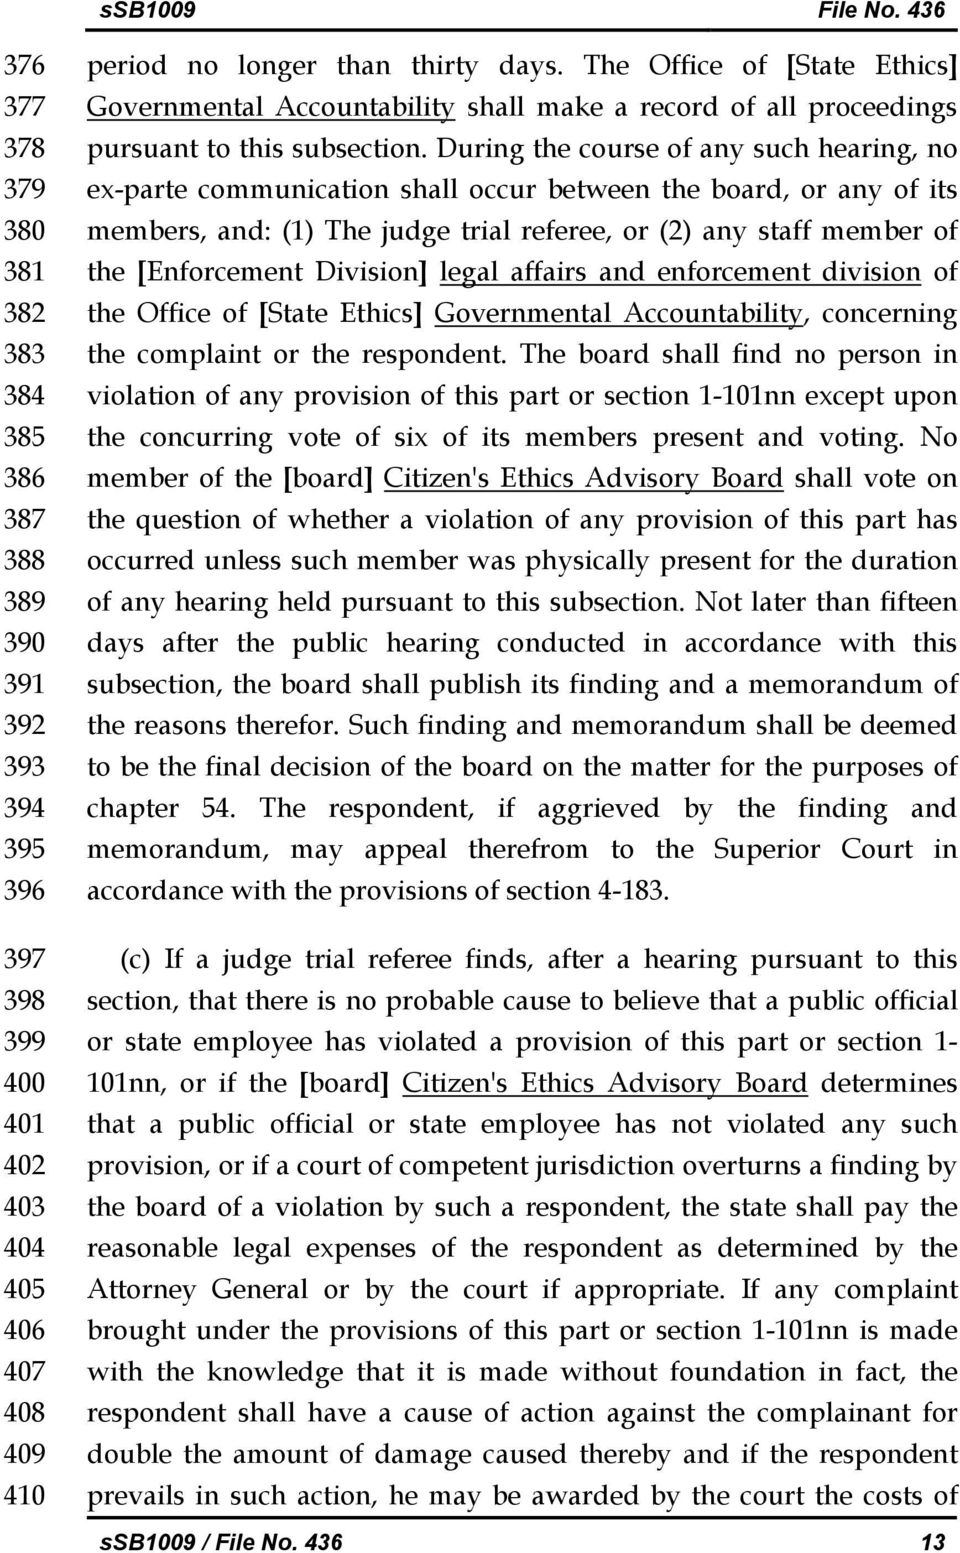 During the course of any such hearing, no ex-parte communication shall occur between the board, or any of its members, and: (1) The judge trial referee, or (2) any staff member of the [Enforcement